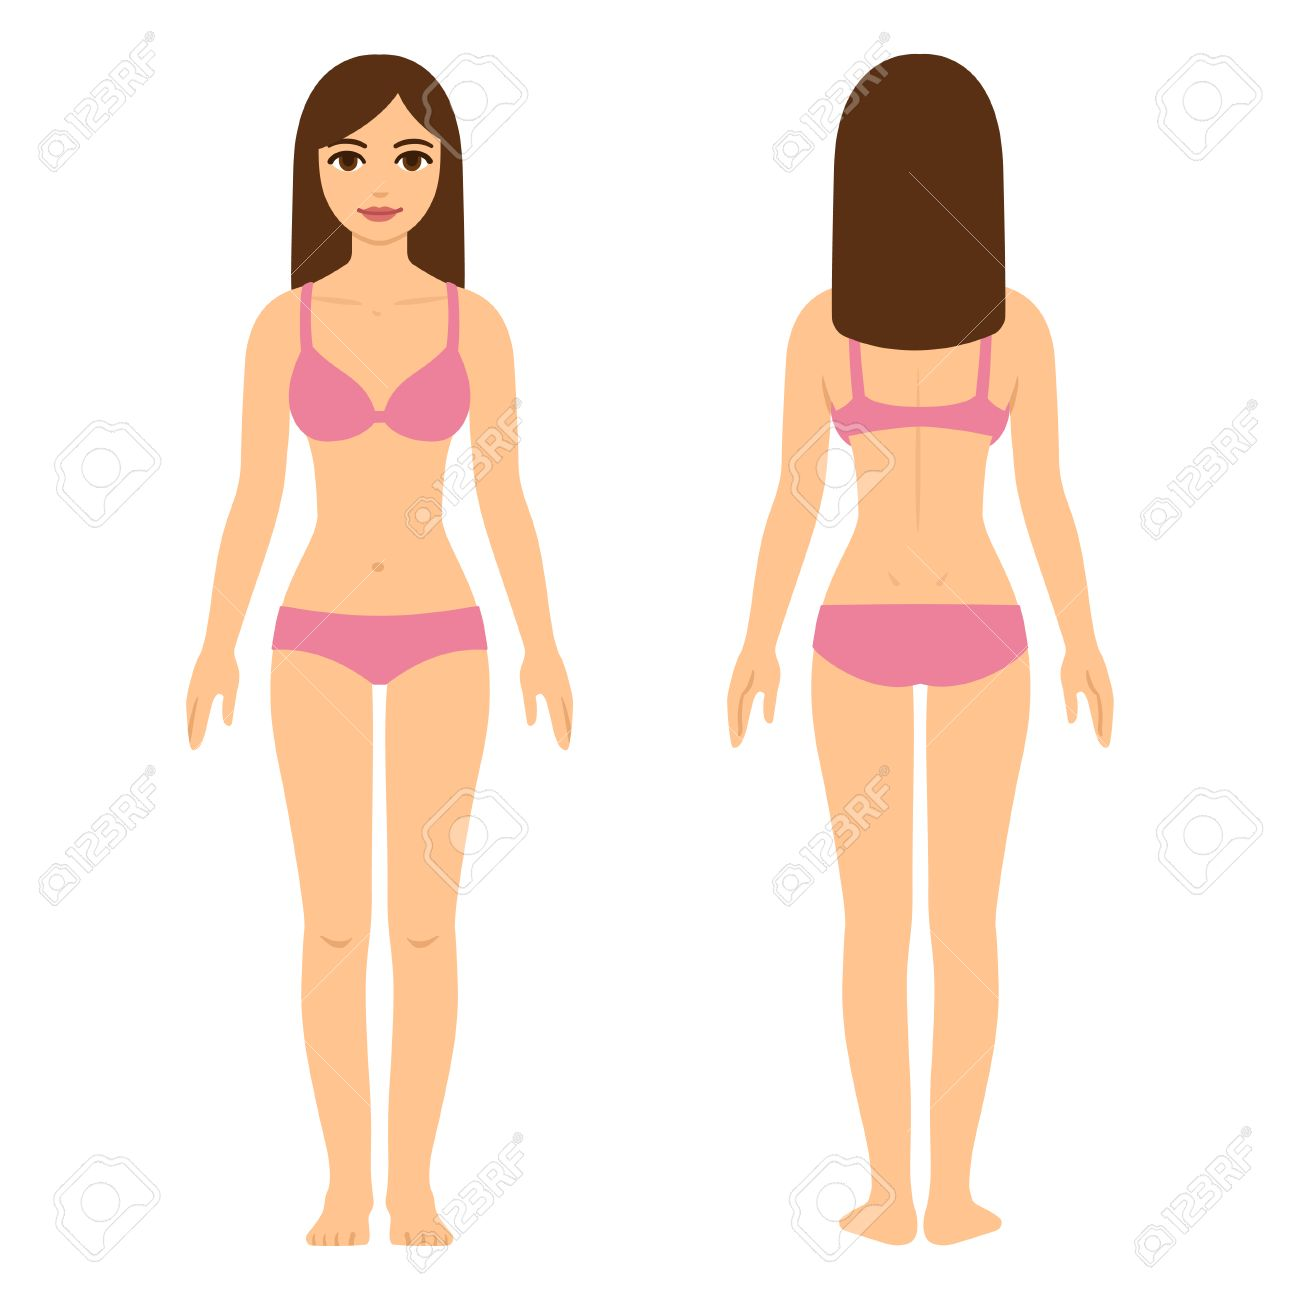 Young pretty woman in underwear, beauty and health illustration. Full body front and back view. - 63947738